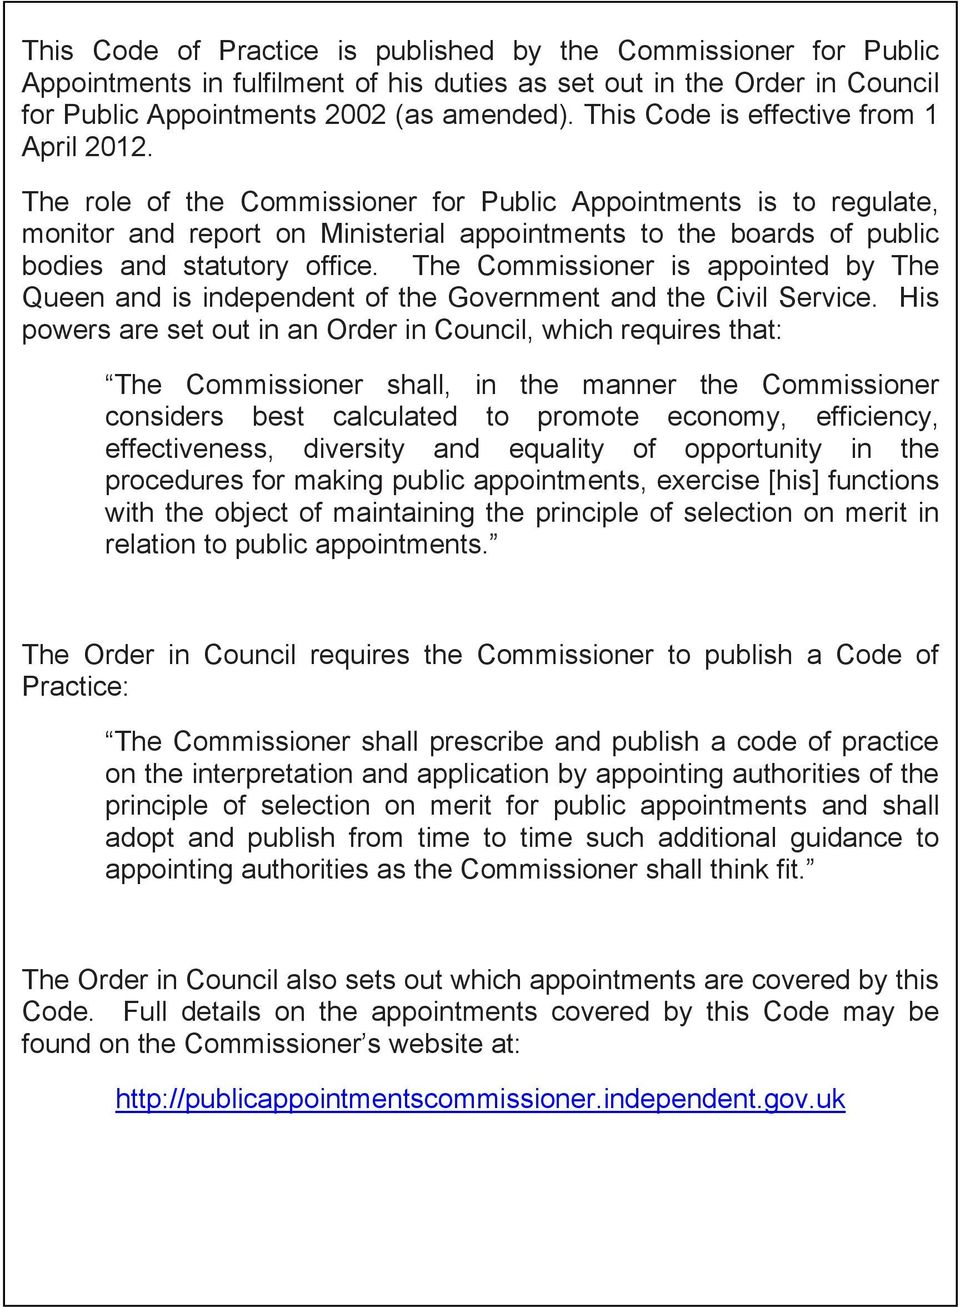 The role of the Commissioner for Public Appointments is to regulate, monitor and report on Ministerial appointments to the boards of public bodies and statutory office.